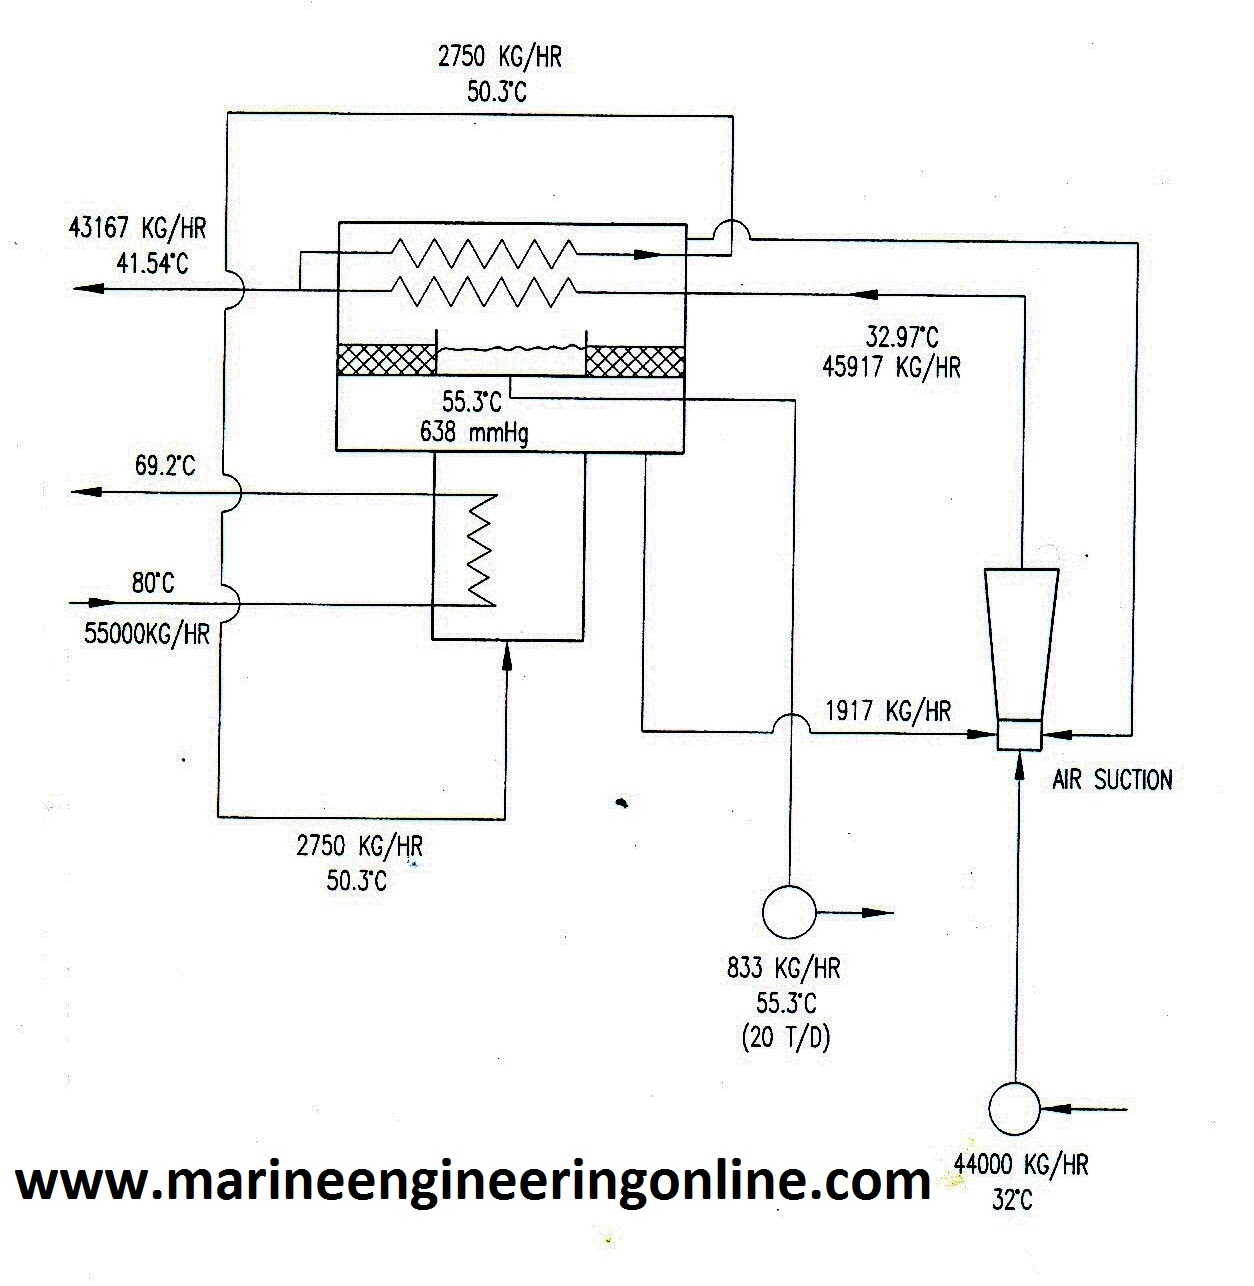 fresh water generator or evaporator used on ships rh marineengineeringonline com sondex fresh water generator manual sasakura fresh water generator manual pdf